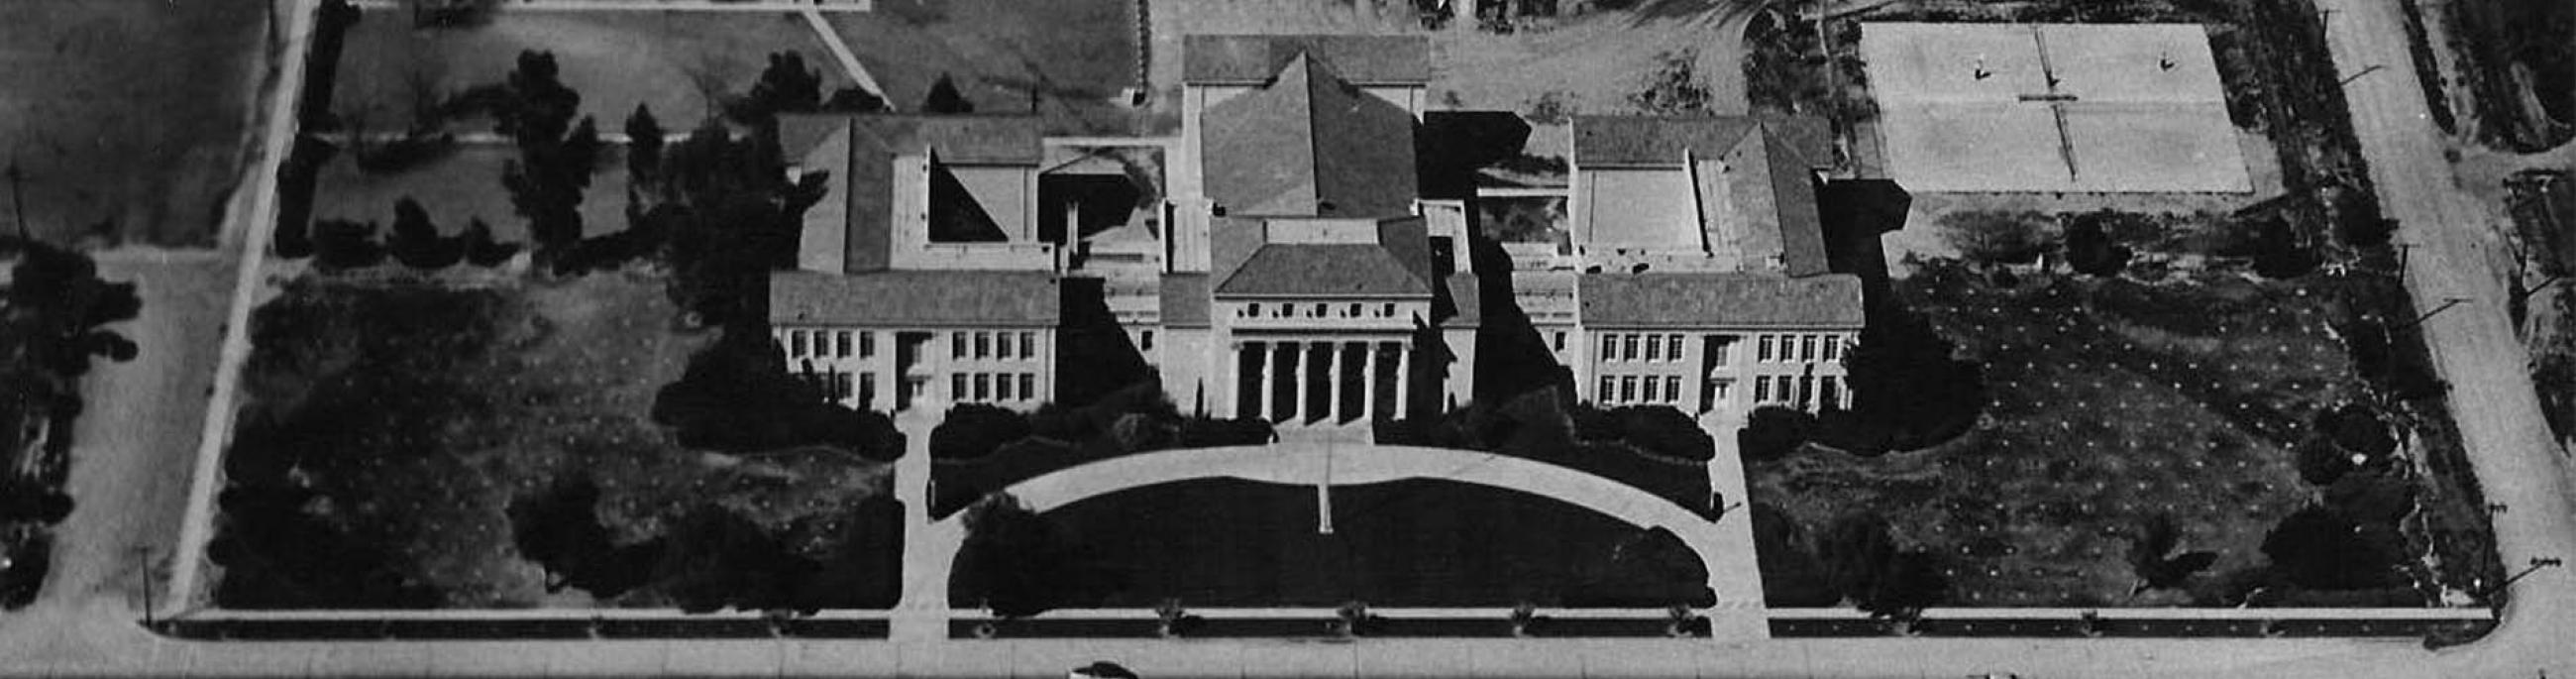 Aerial photo of Chandler High School, 1965, photo provided by Chandler Museum